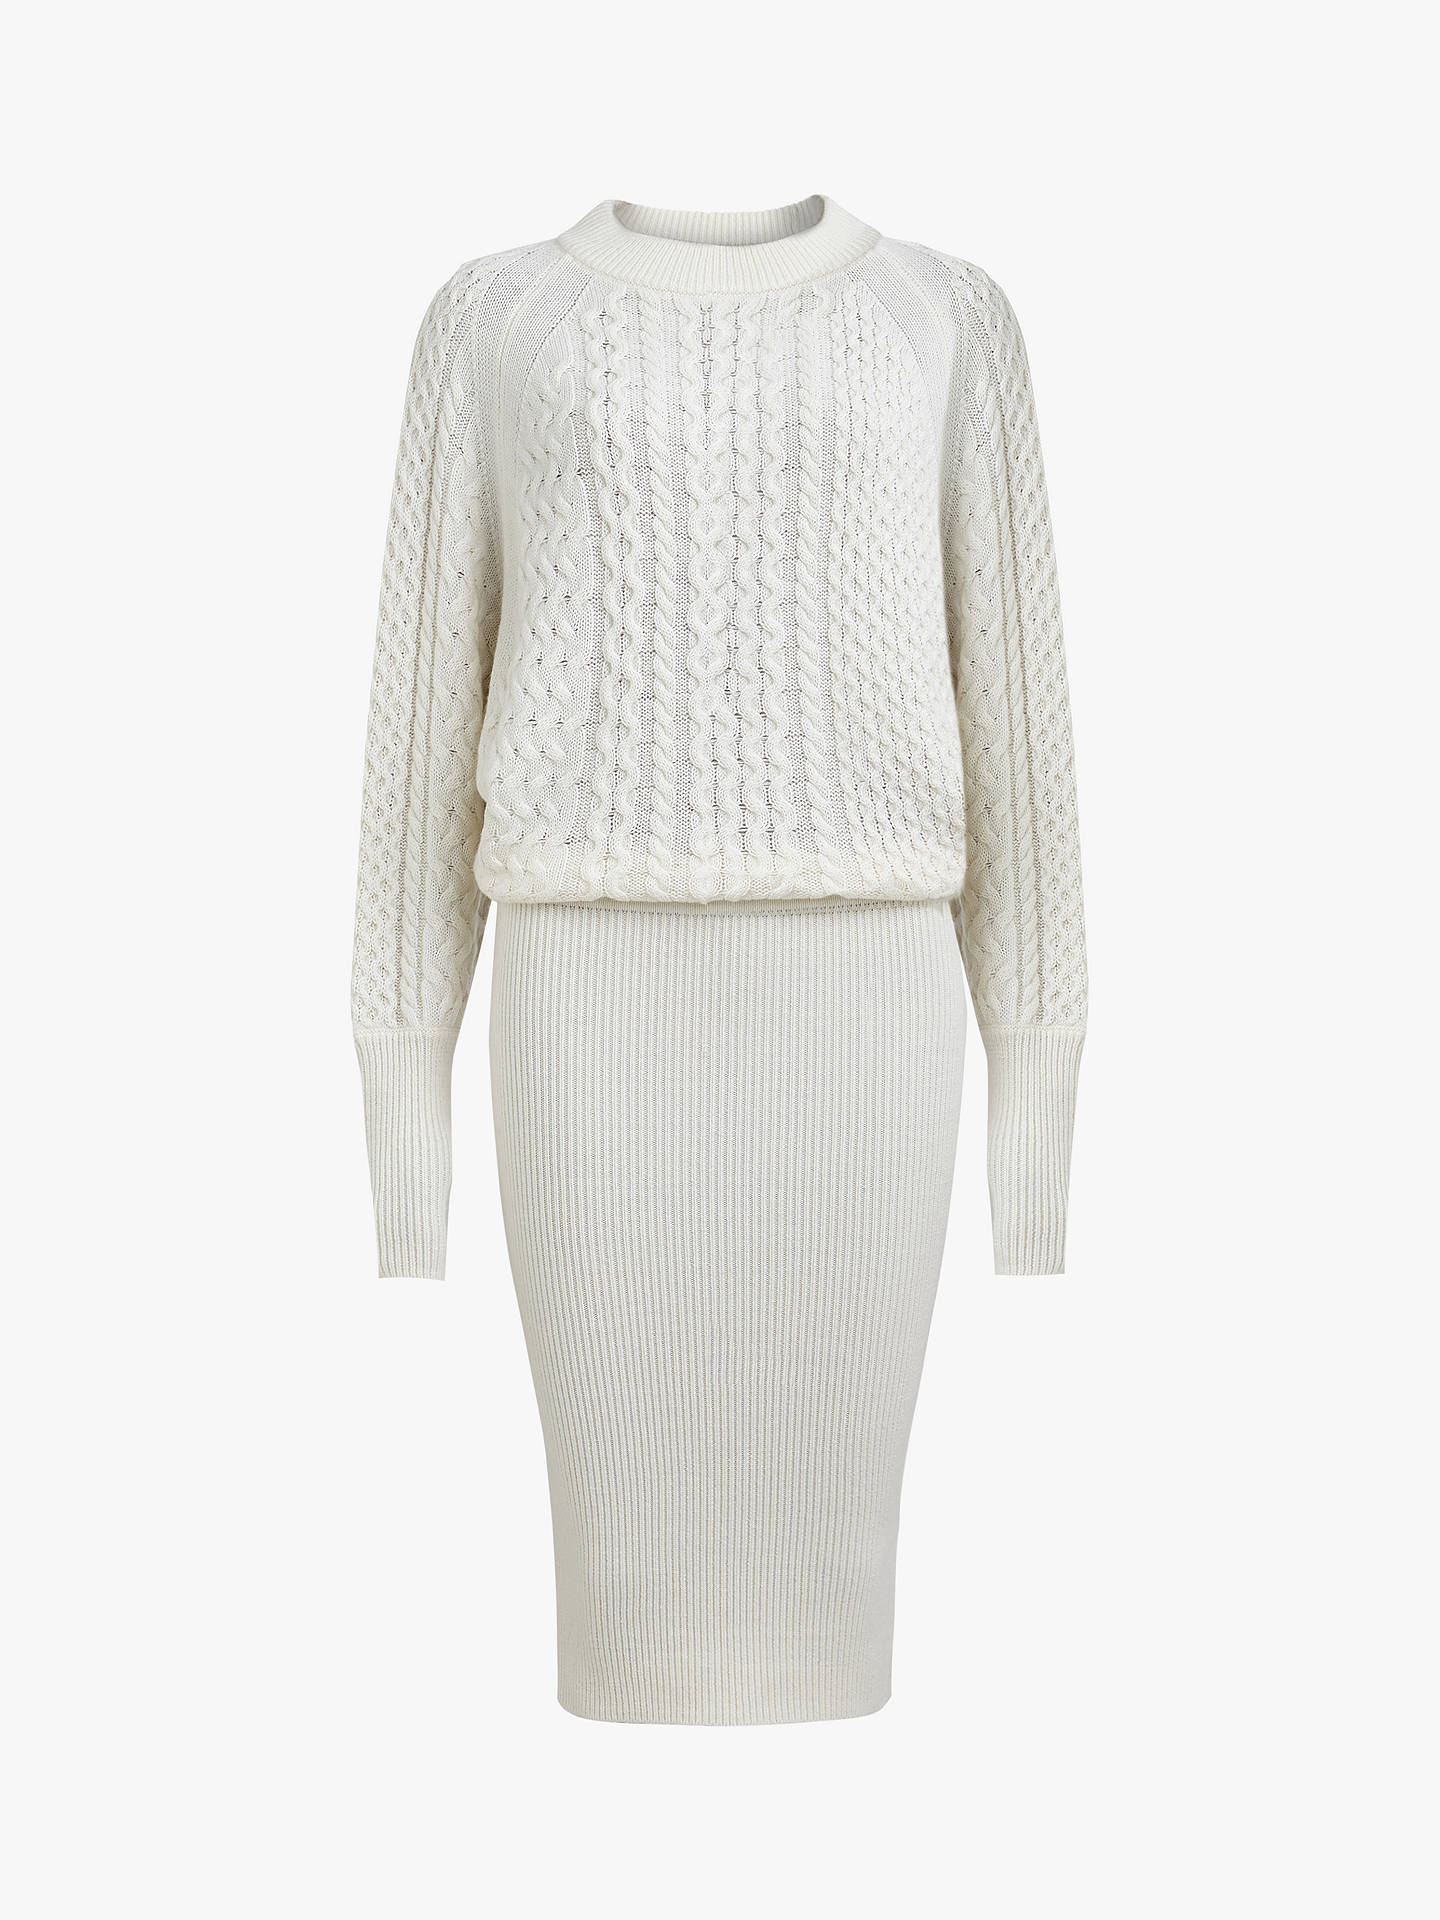 Buy AllSaints Dilone Knitted Dress, Chalk White, L Online at johnlewis.com